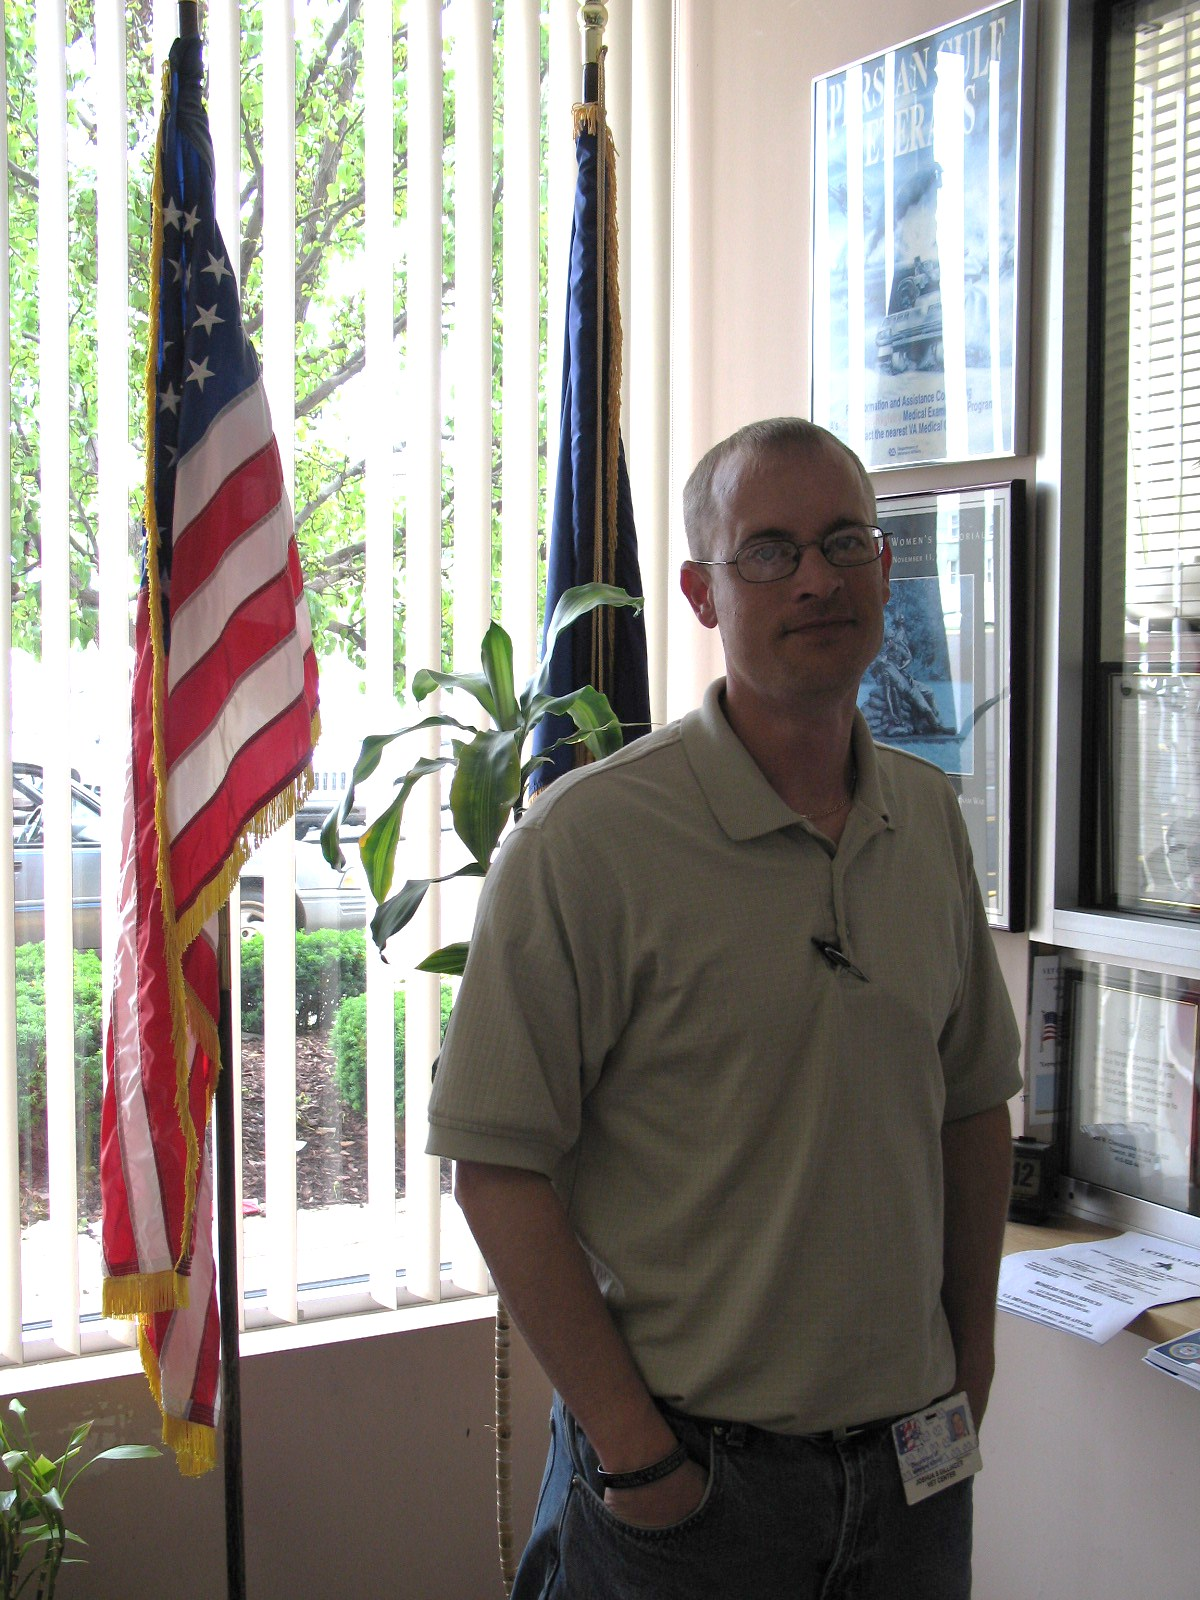 Global War on Terrorism Outreach Specialist and OIF/OEF veteran Josh Dillinger